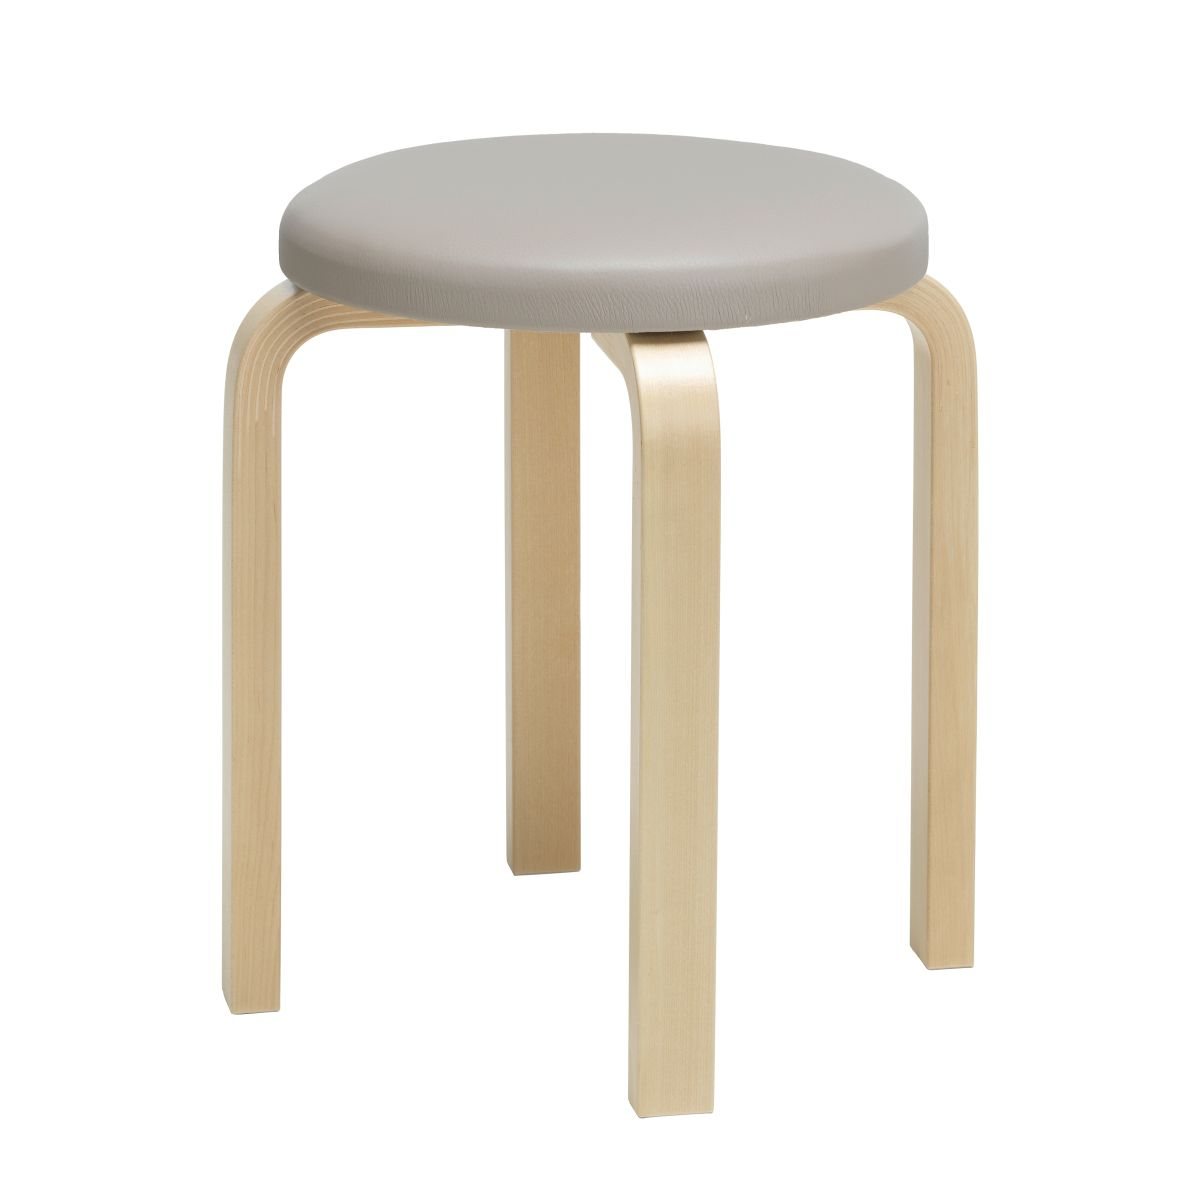 Stool-E60-legs-birch-top-leather-upholstery_F-2912739